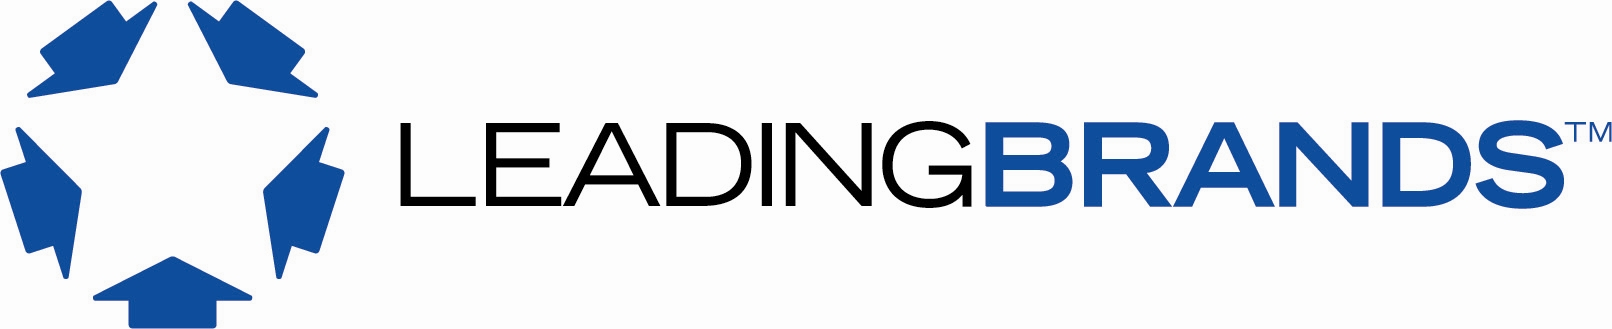 Leading Brands, Inc. Company Logo